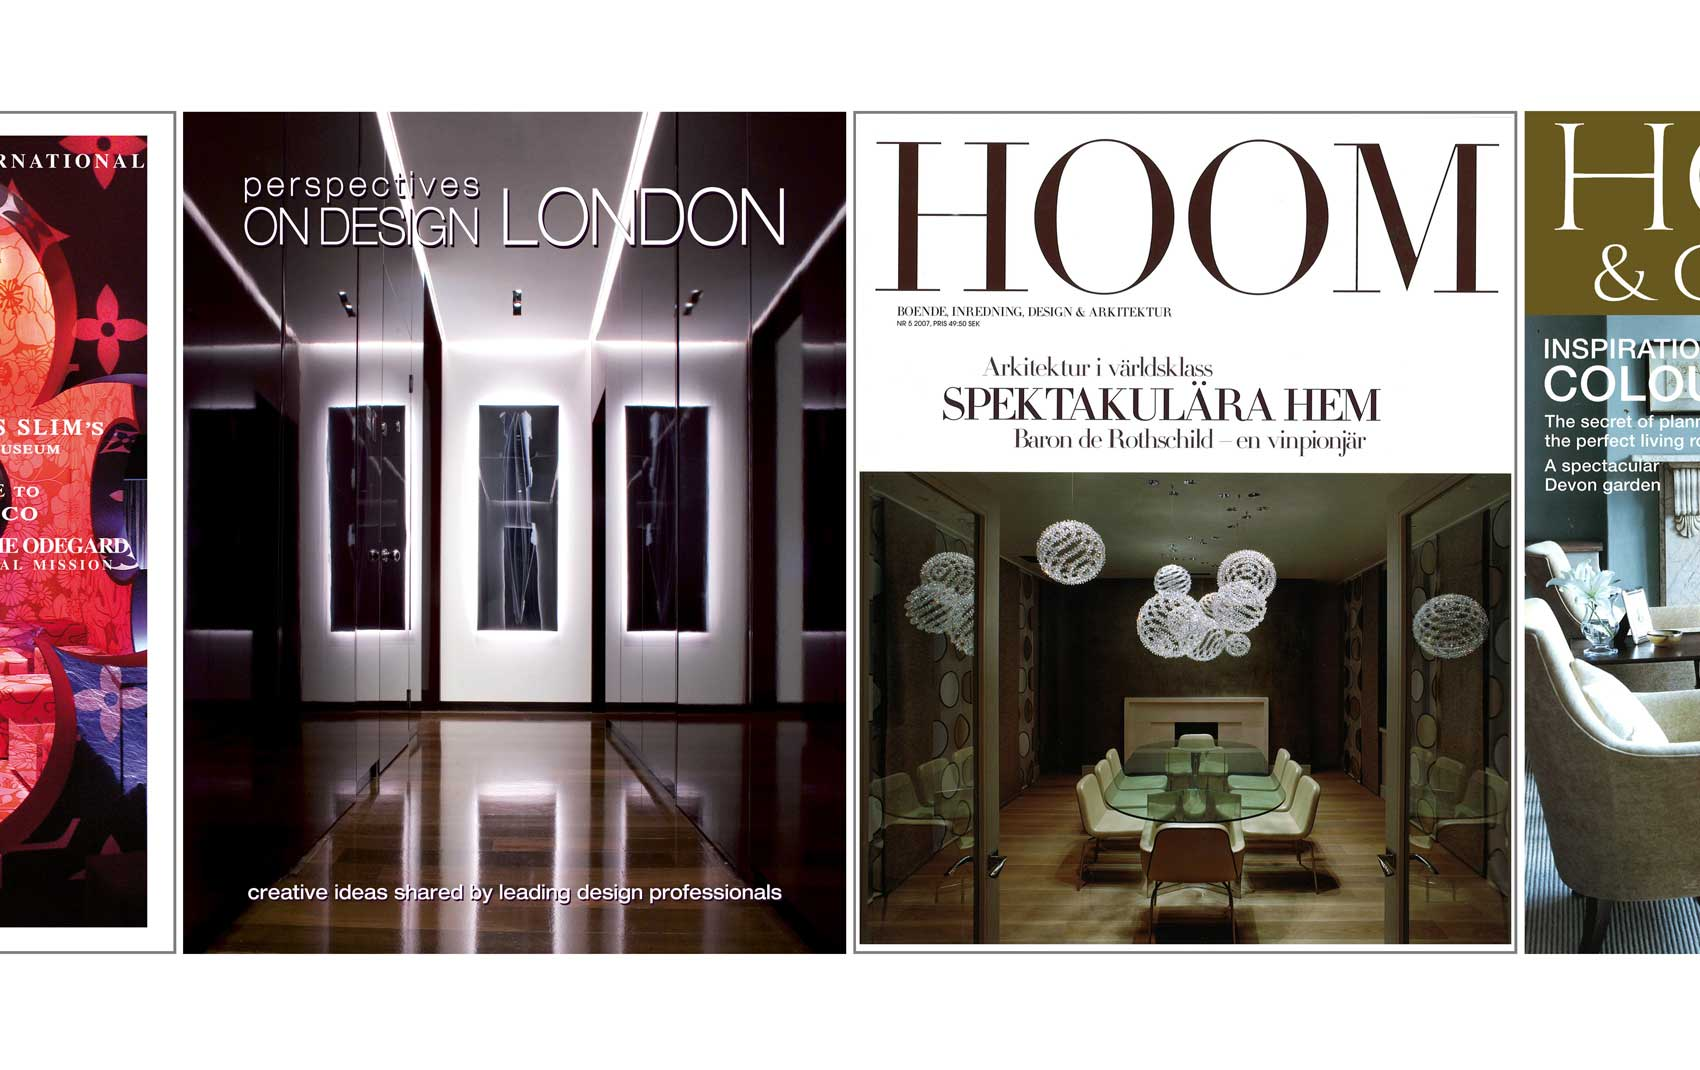 Perspective on Design and Hoom Magazines